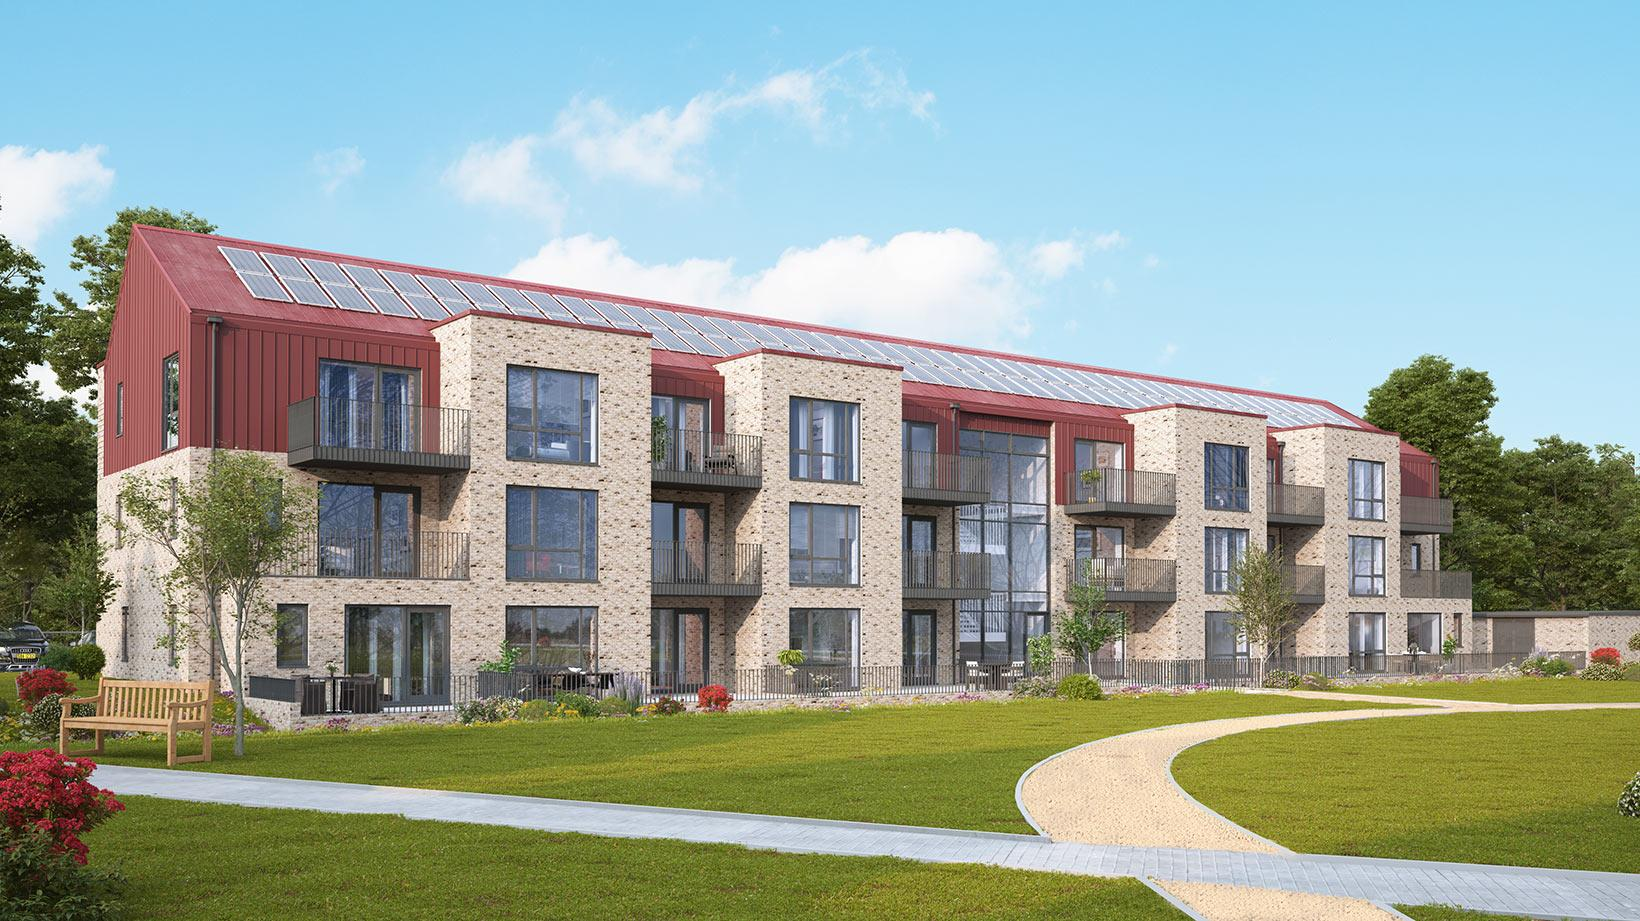 An image of apartments from the Shape Homes York housing development